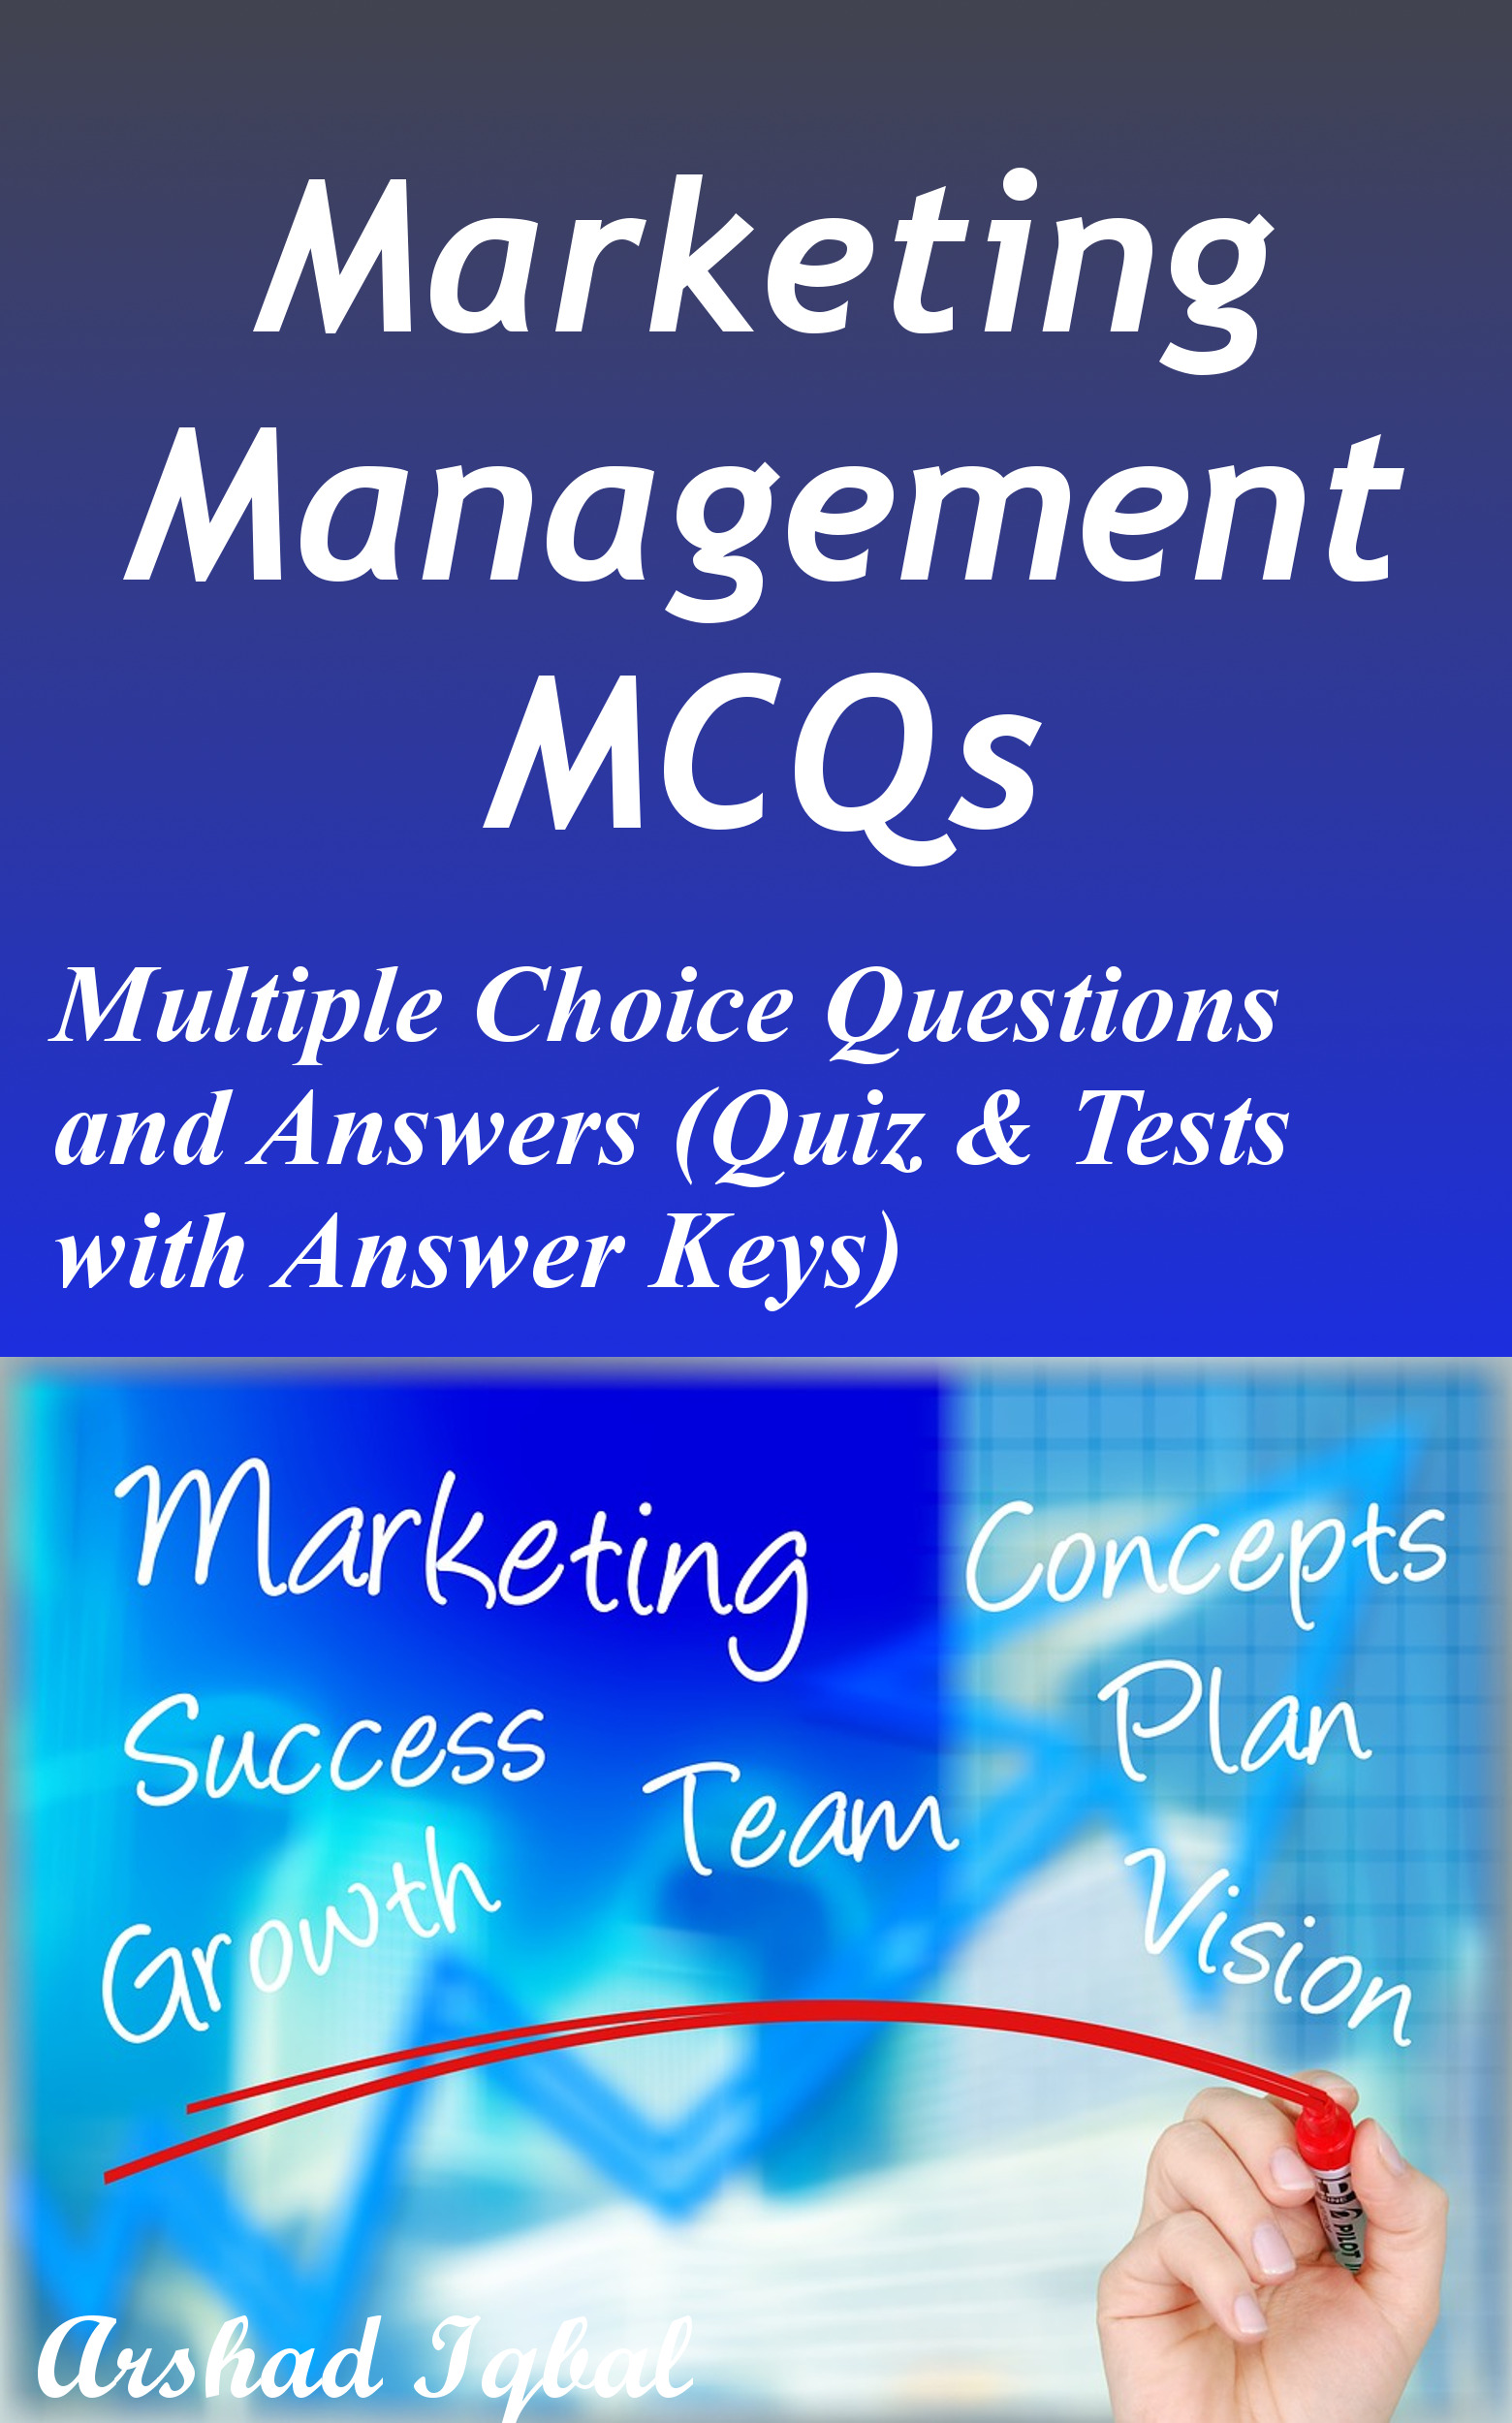 Marketing Management Multiple Choice Questions and Answers (MCQs): Quizzes & Practice Tests with Answer Key